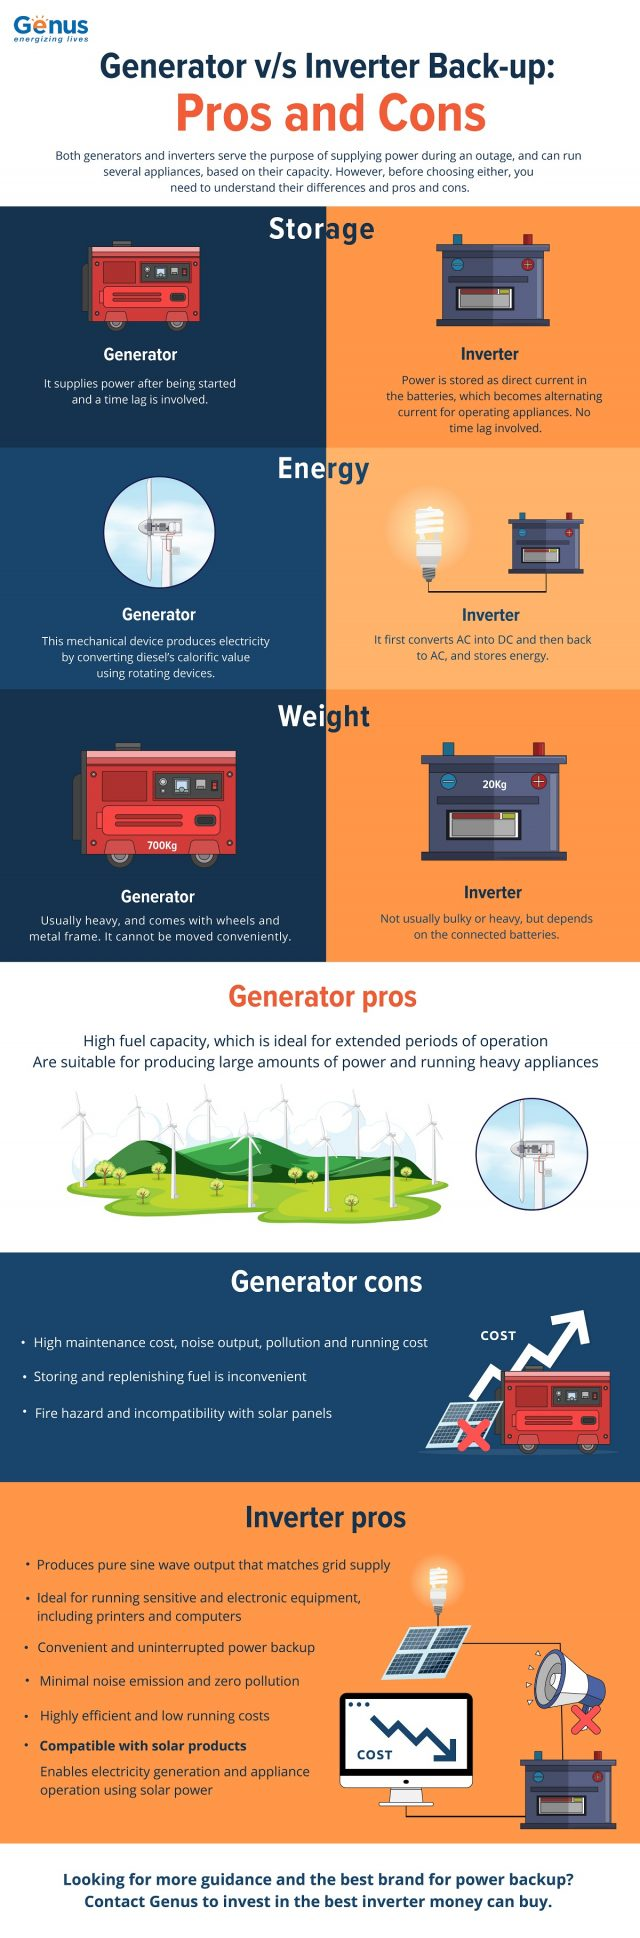 Generator vs Inverter Back-up Pros and Cons Infographic